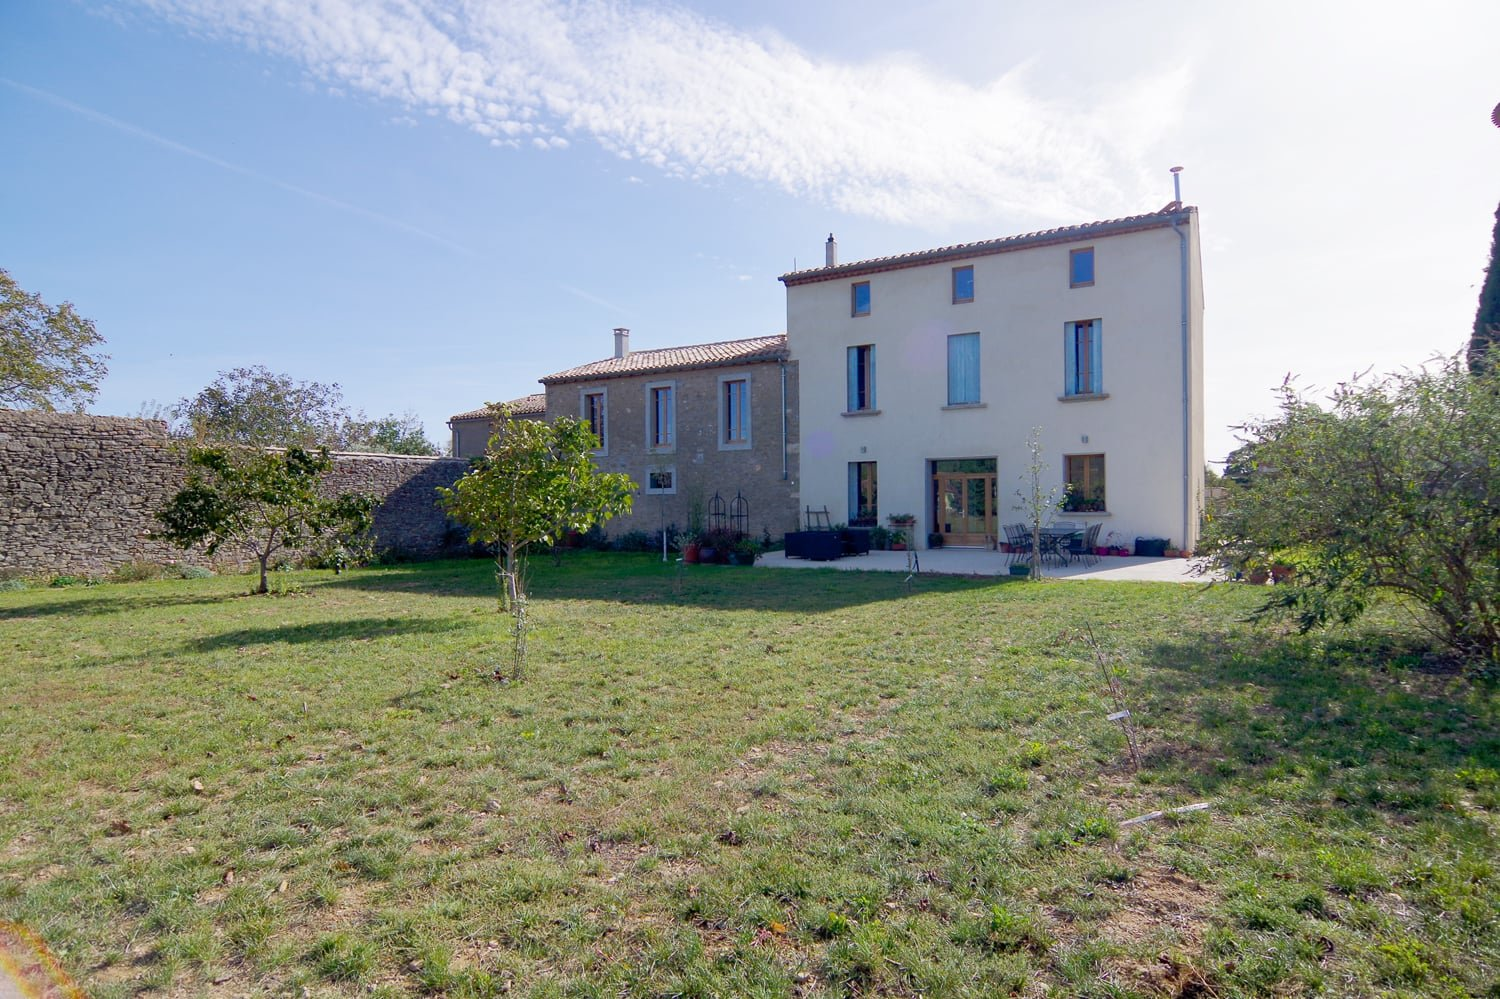 Manor house for sale in Aude, with outbuilding and garden